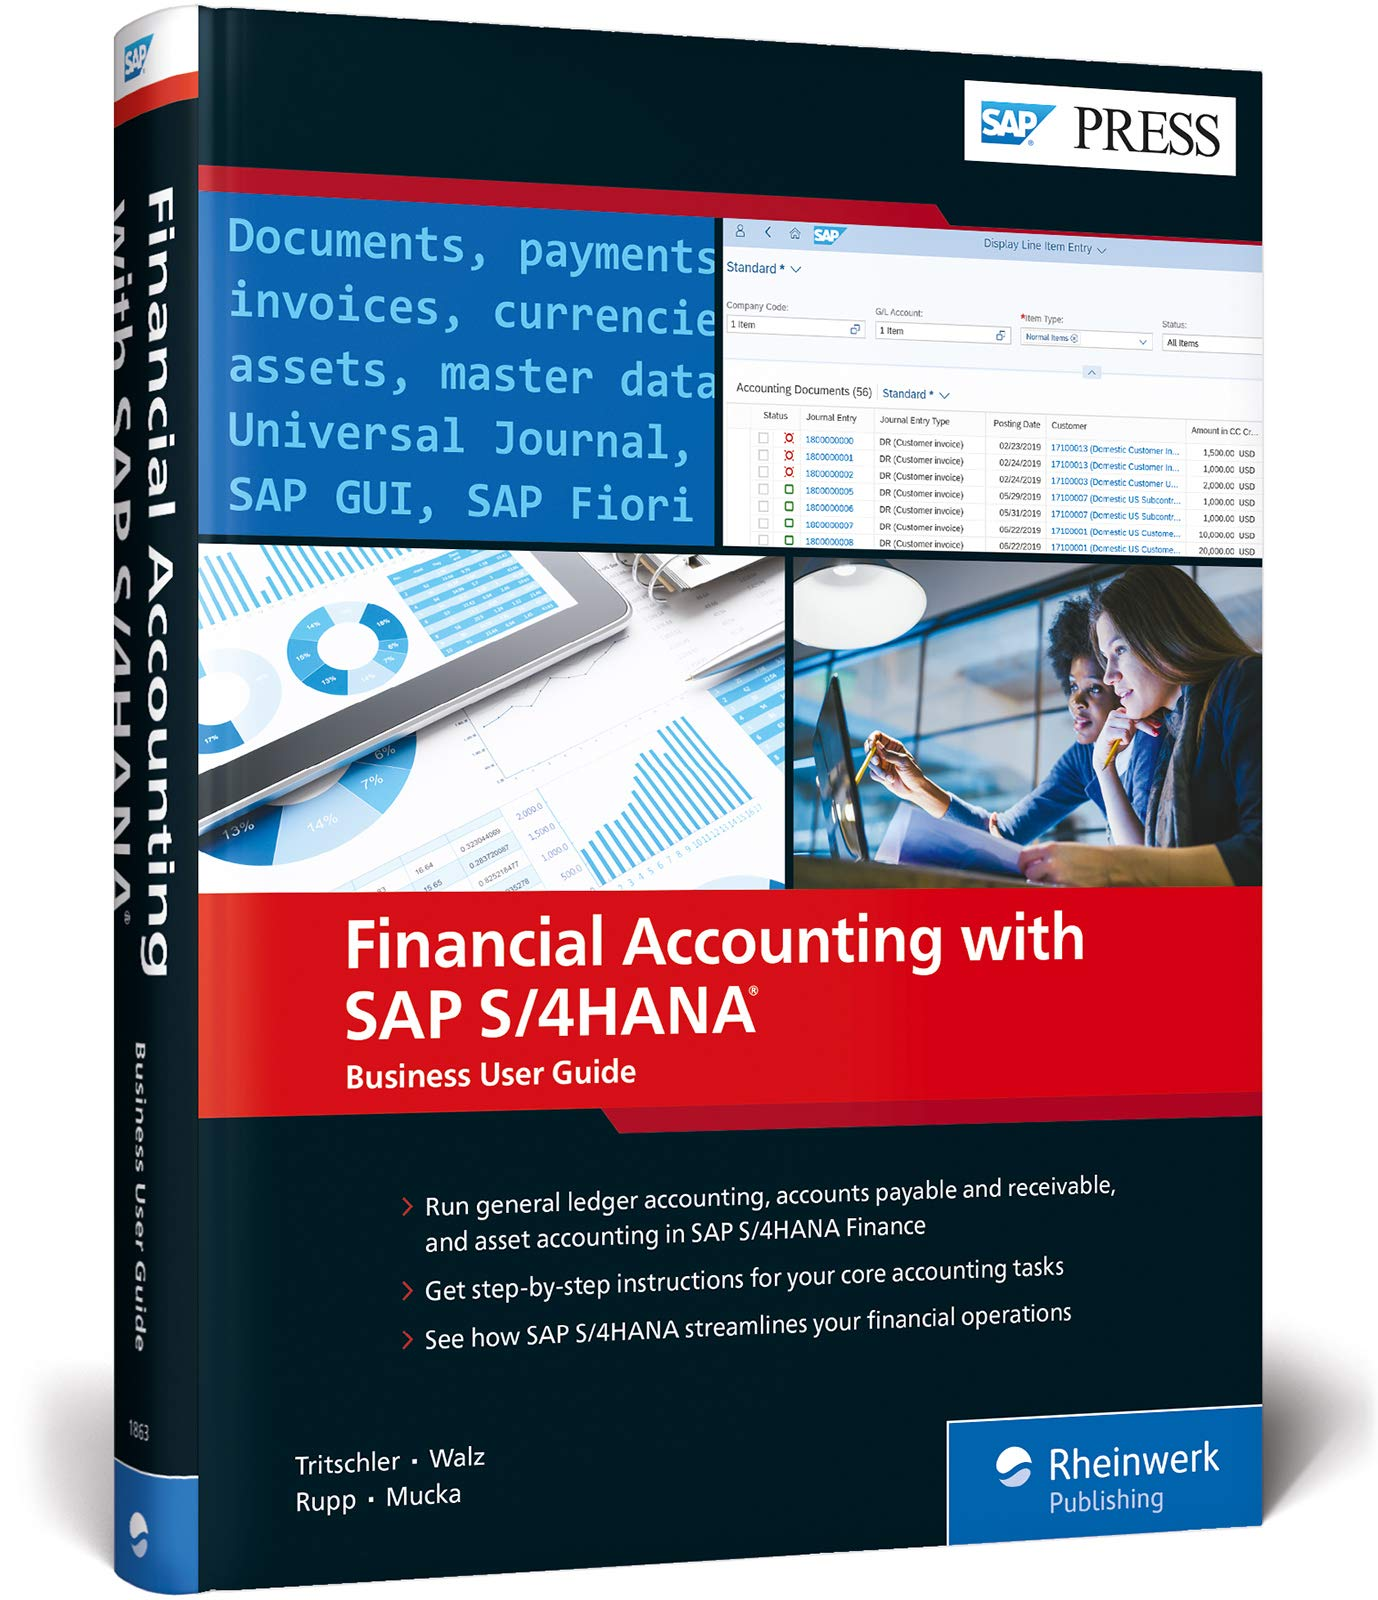 Financial Accounting with SAP S/4HANA: Business User Guide (SAP PRESS)